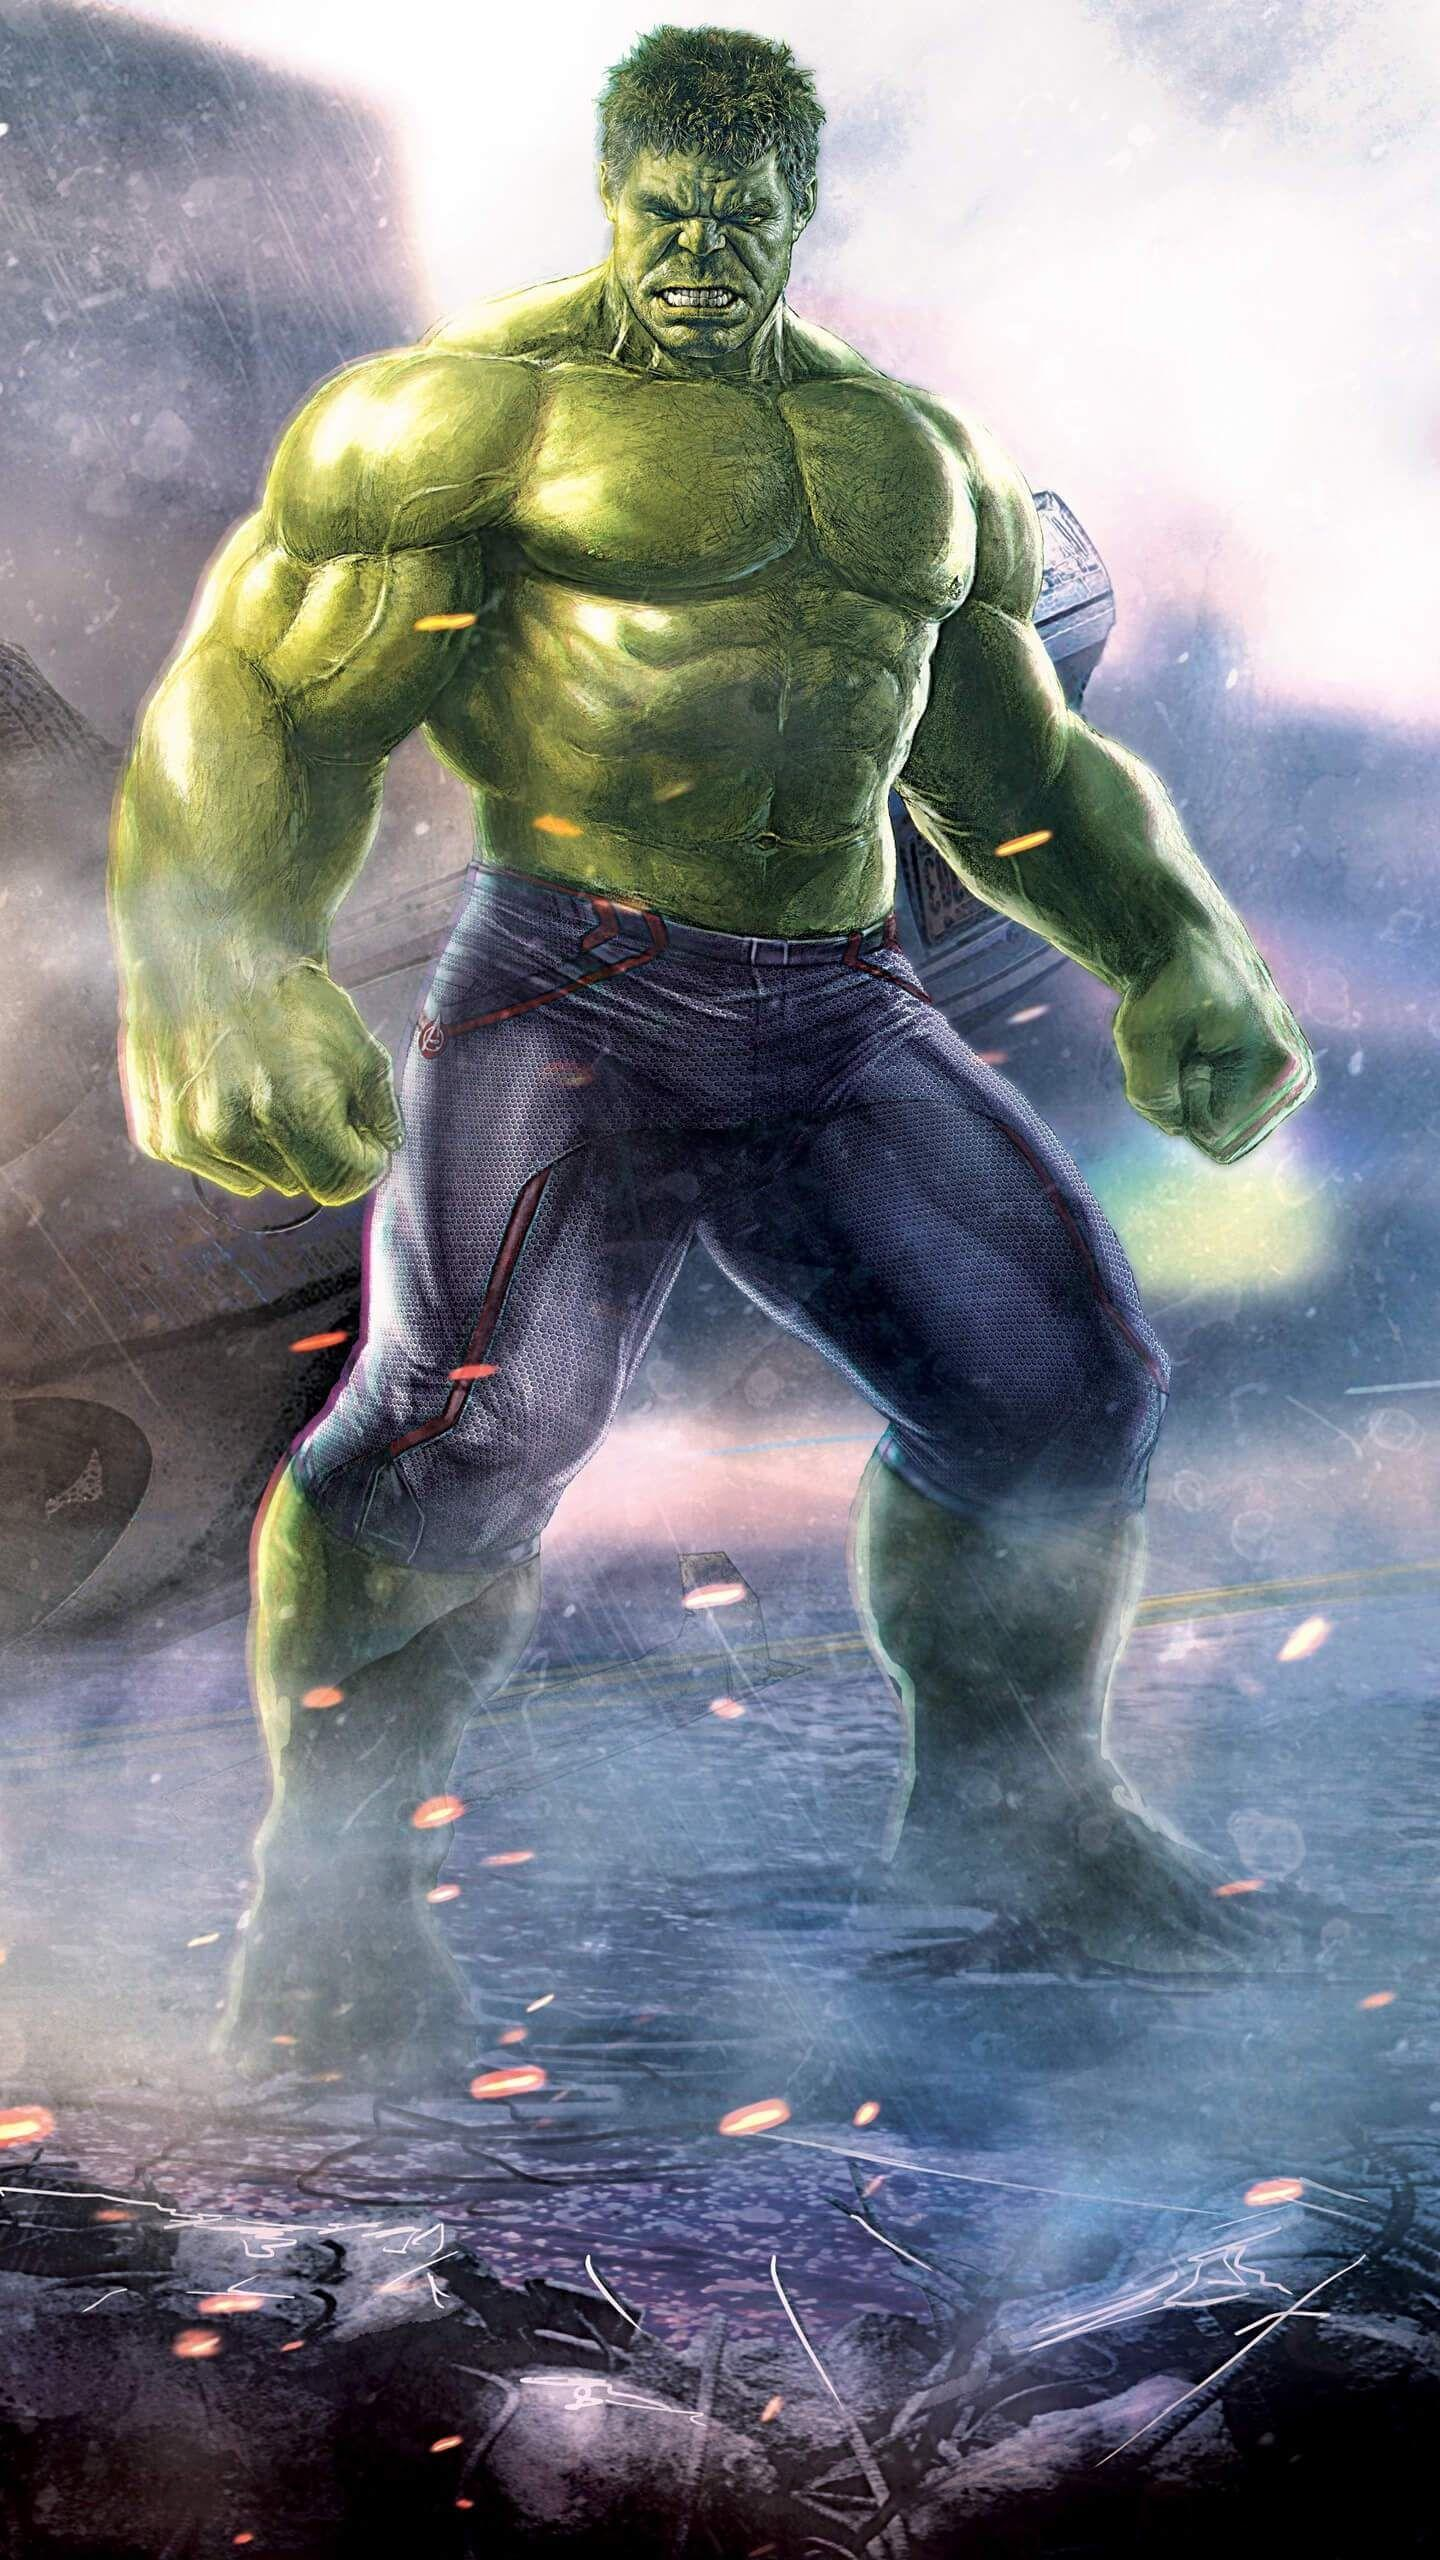 It's just an image of Monster Picture of the Hulk